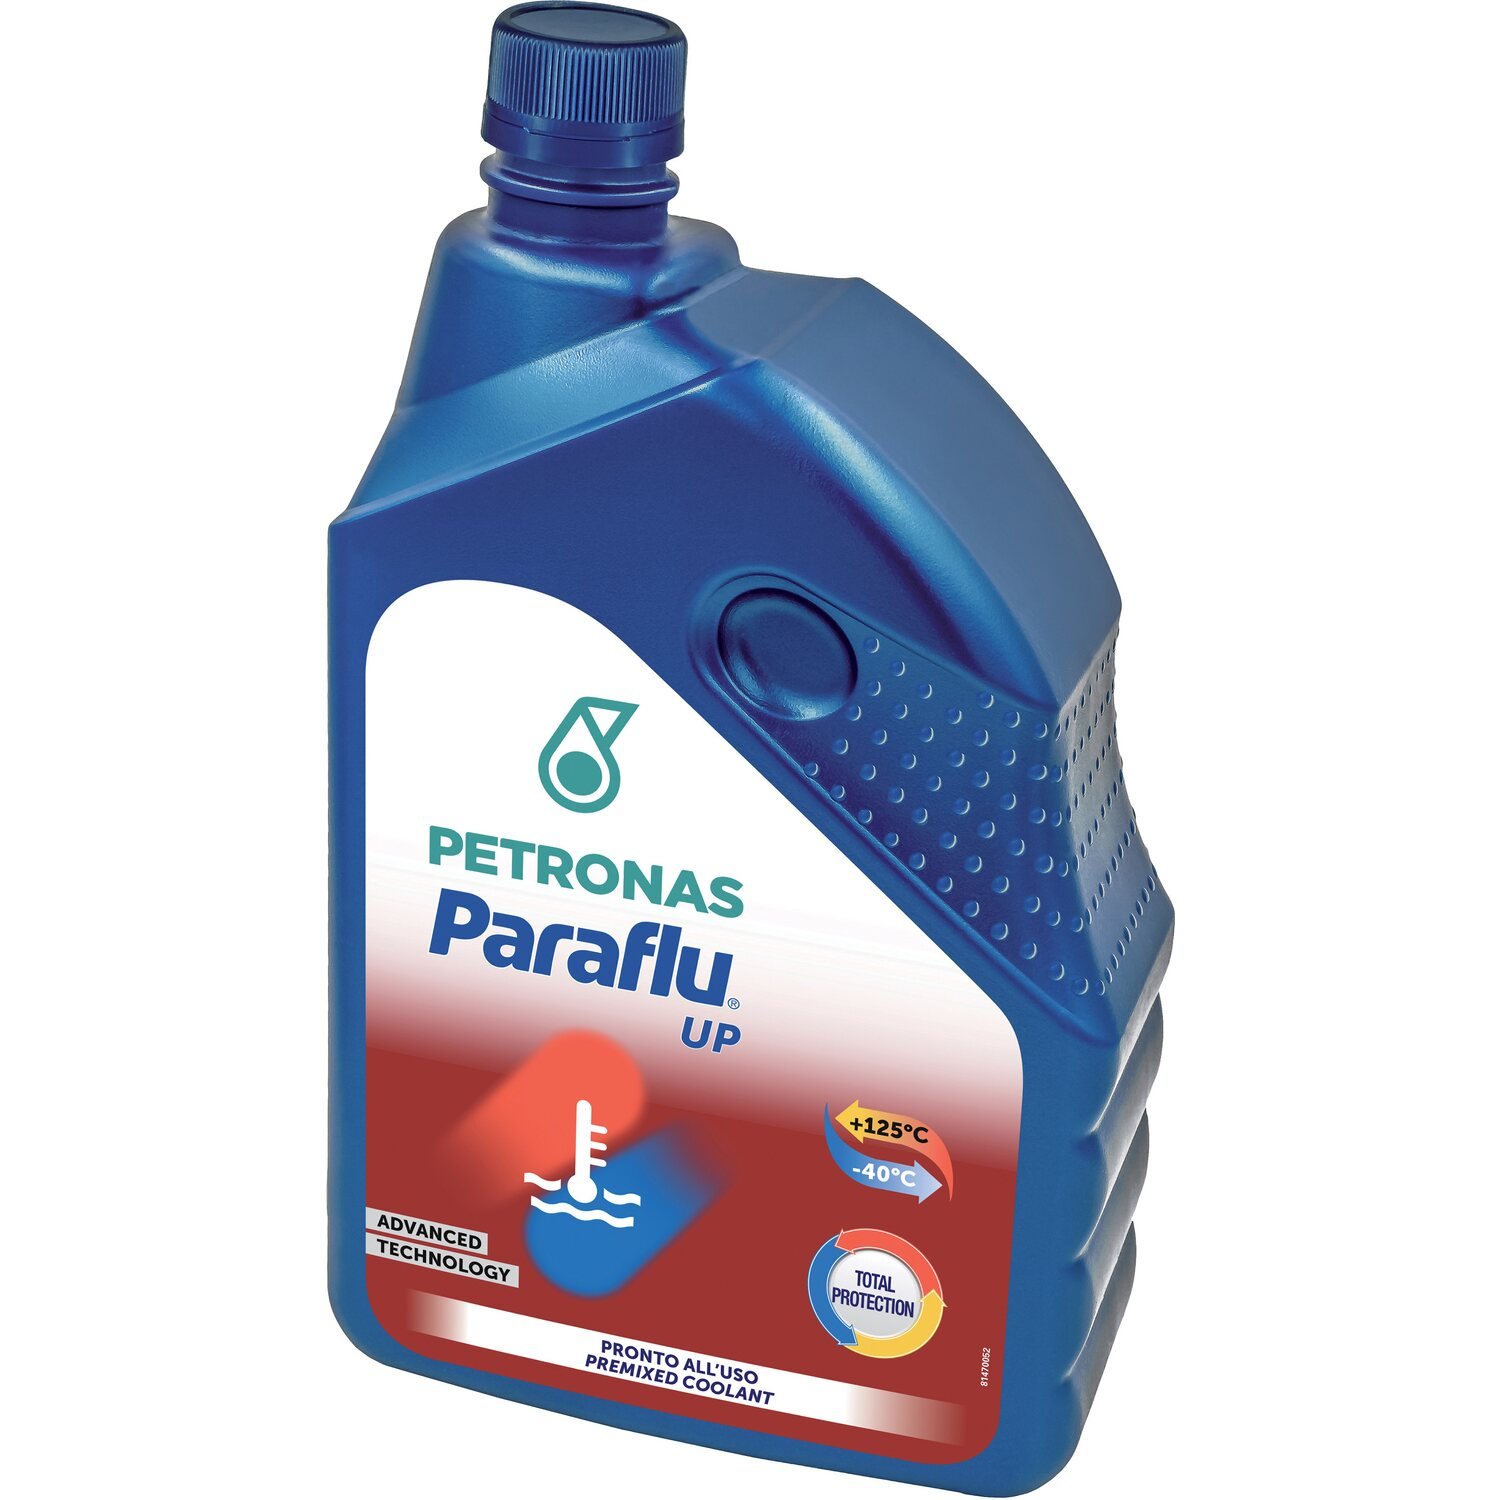 Paraflu up ultra protection pronto all uso 2 l acquista da obi for Obi stufe a combustibile liquido